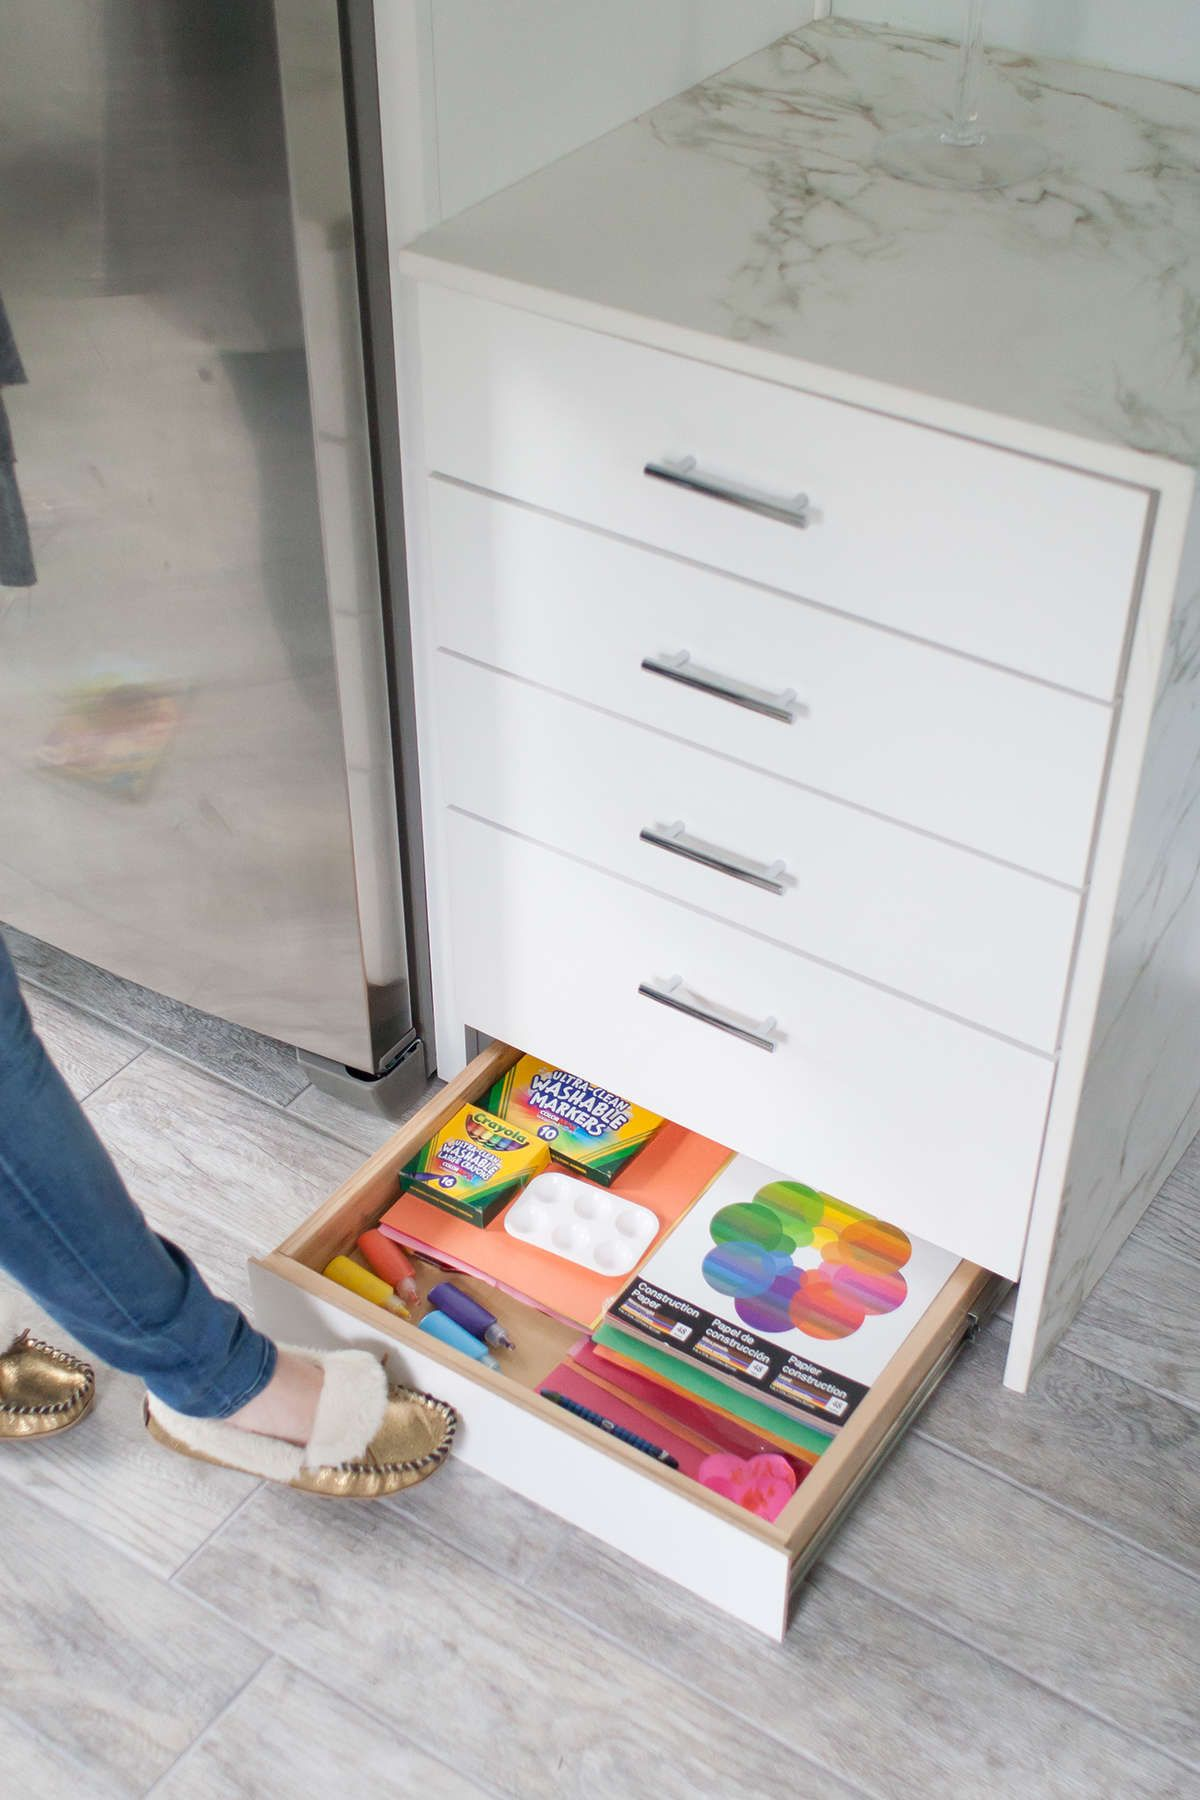 Our New Kitchen Reveal with the Home Depot | Pinterest